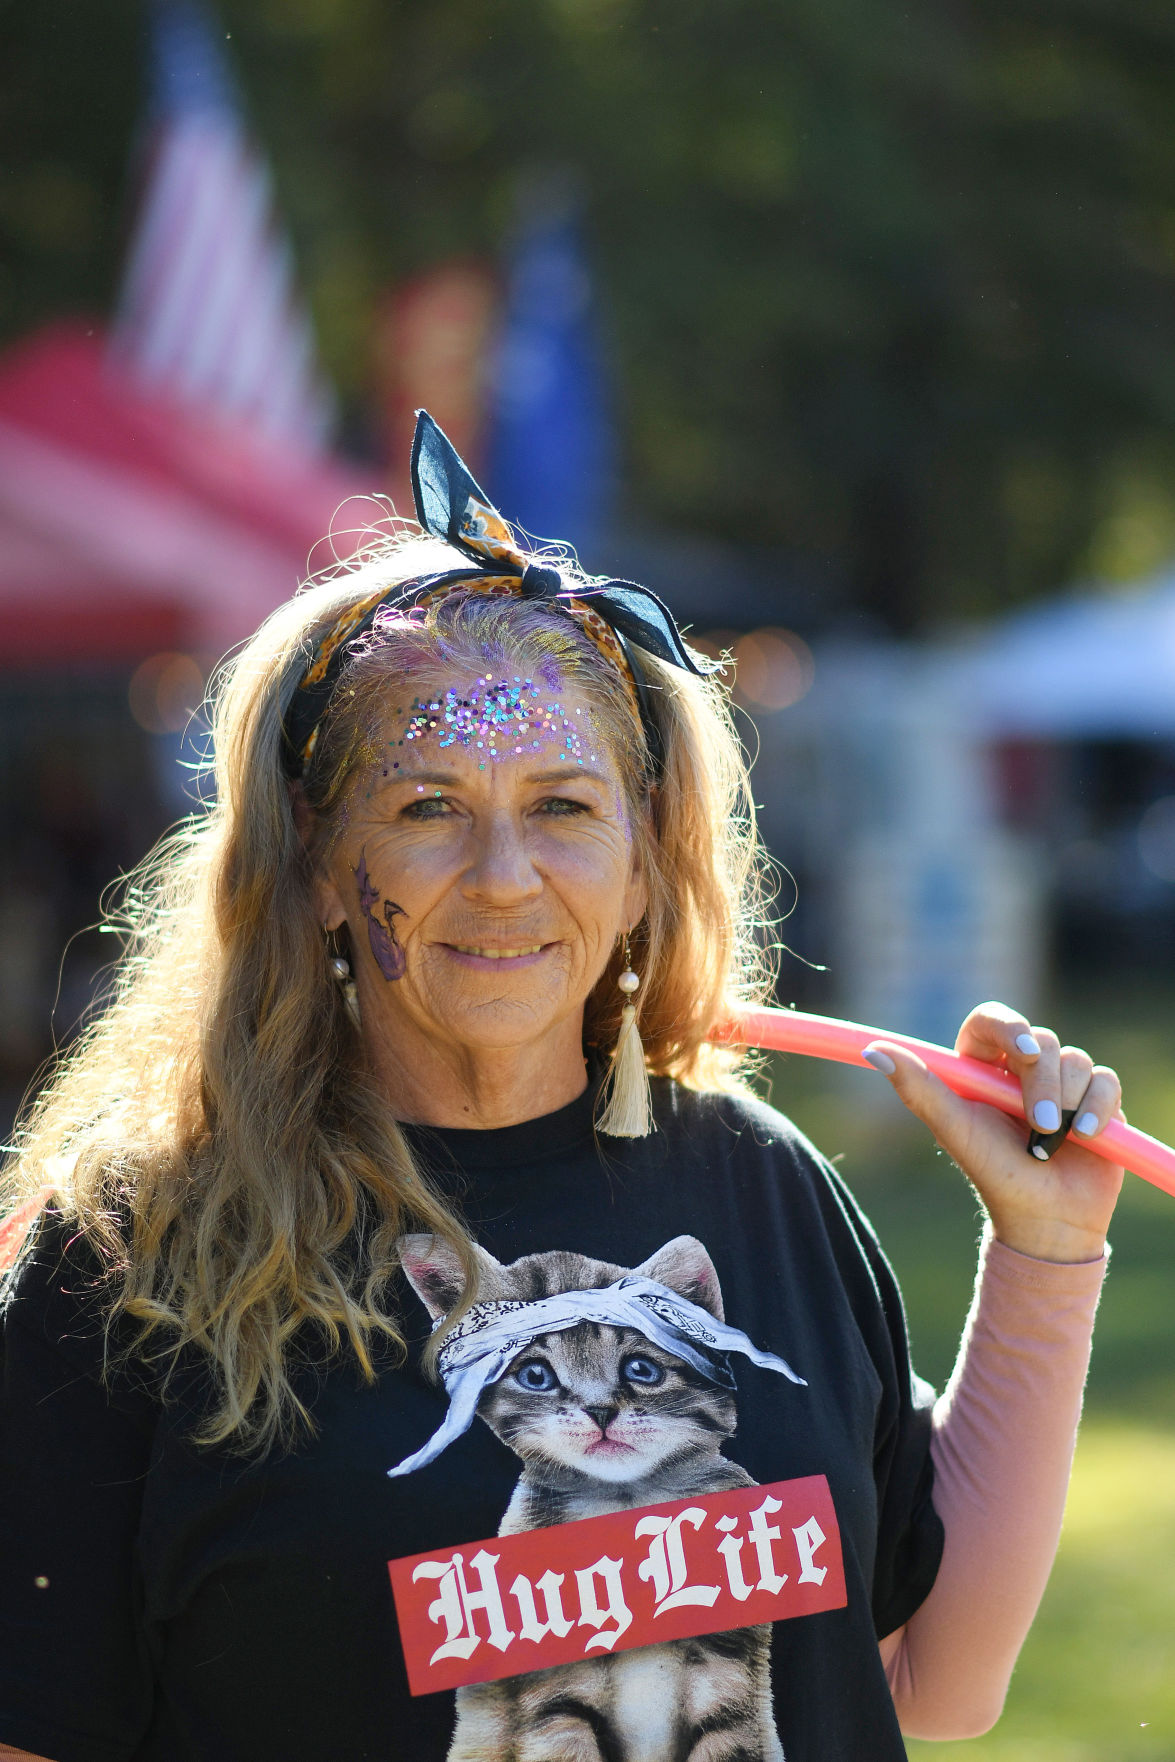 Kitcat Cunningham, owner of Hoopitude, a hula hoop company, at the Edisto Blackwater Boogie on October 11, 2019 at Givhans Ferry State Park. By Joy Bonala